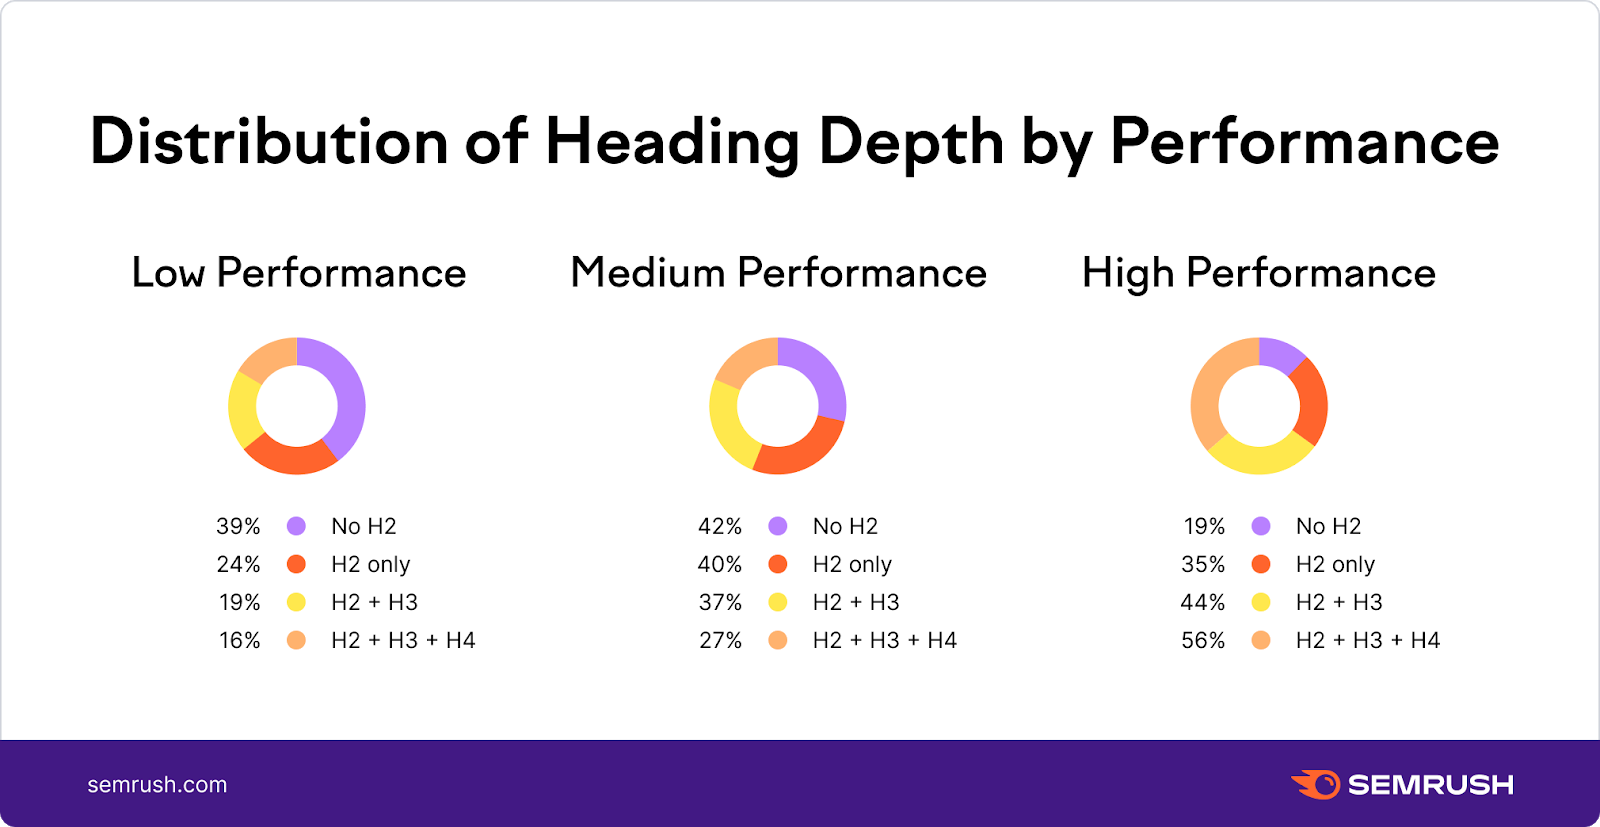 Heading depth by performance